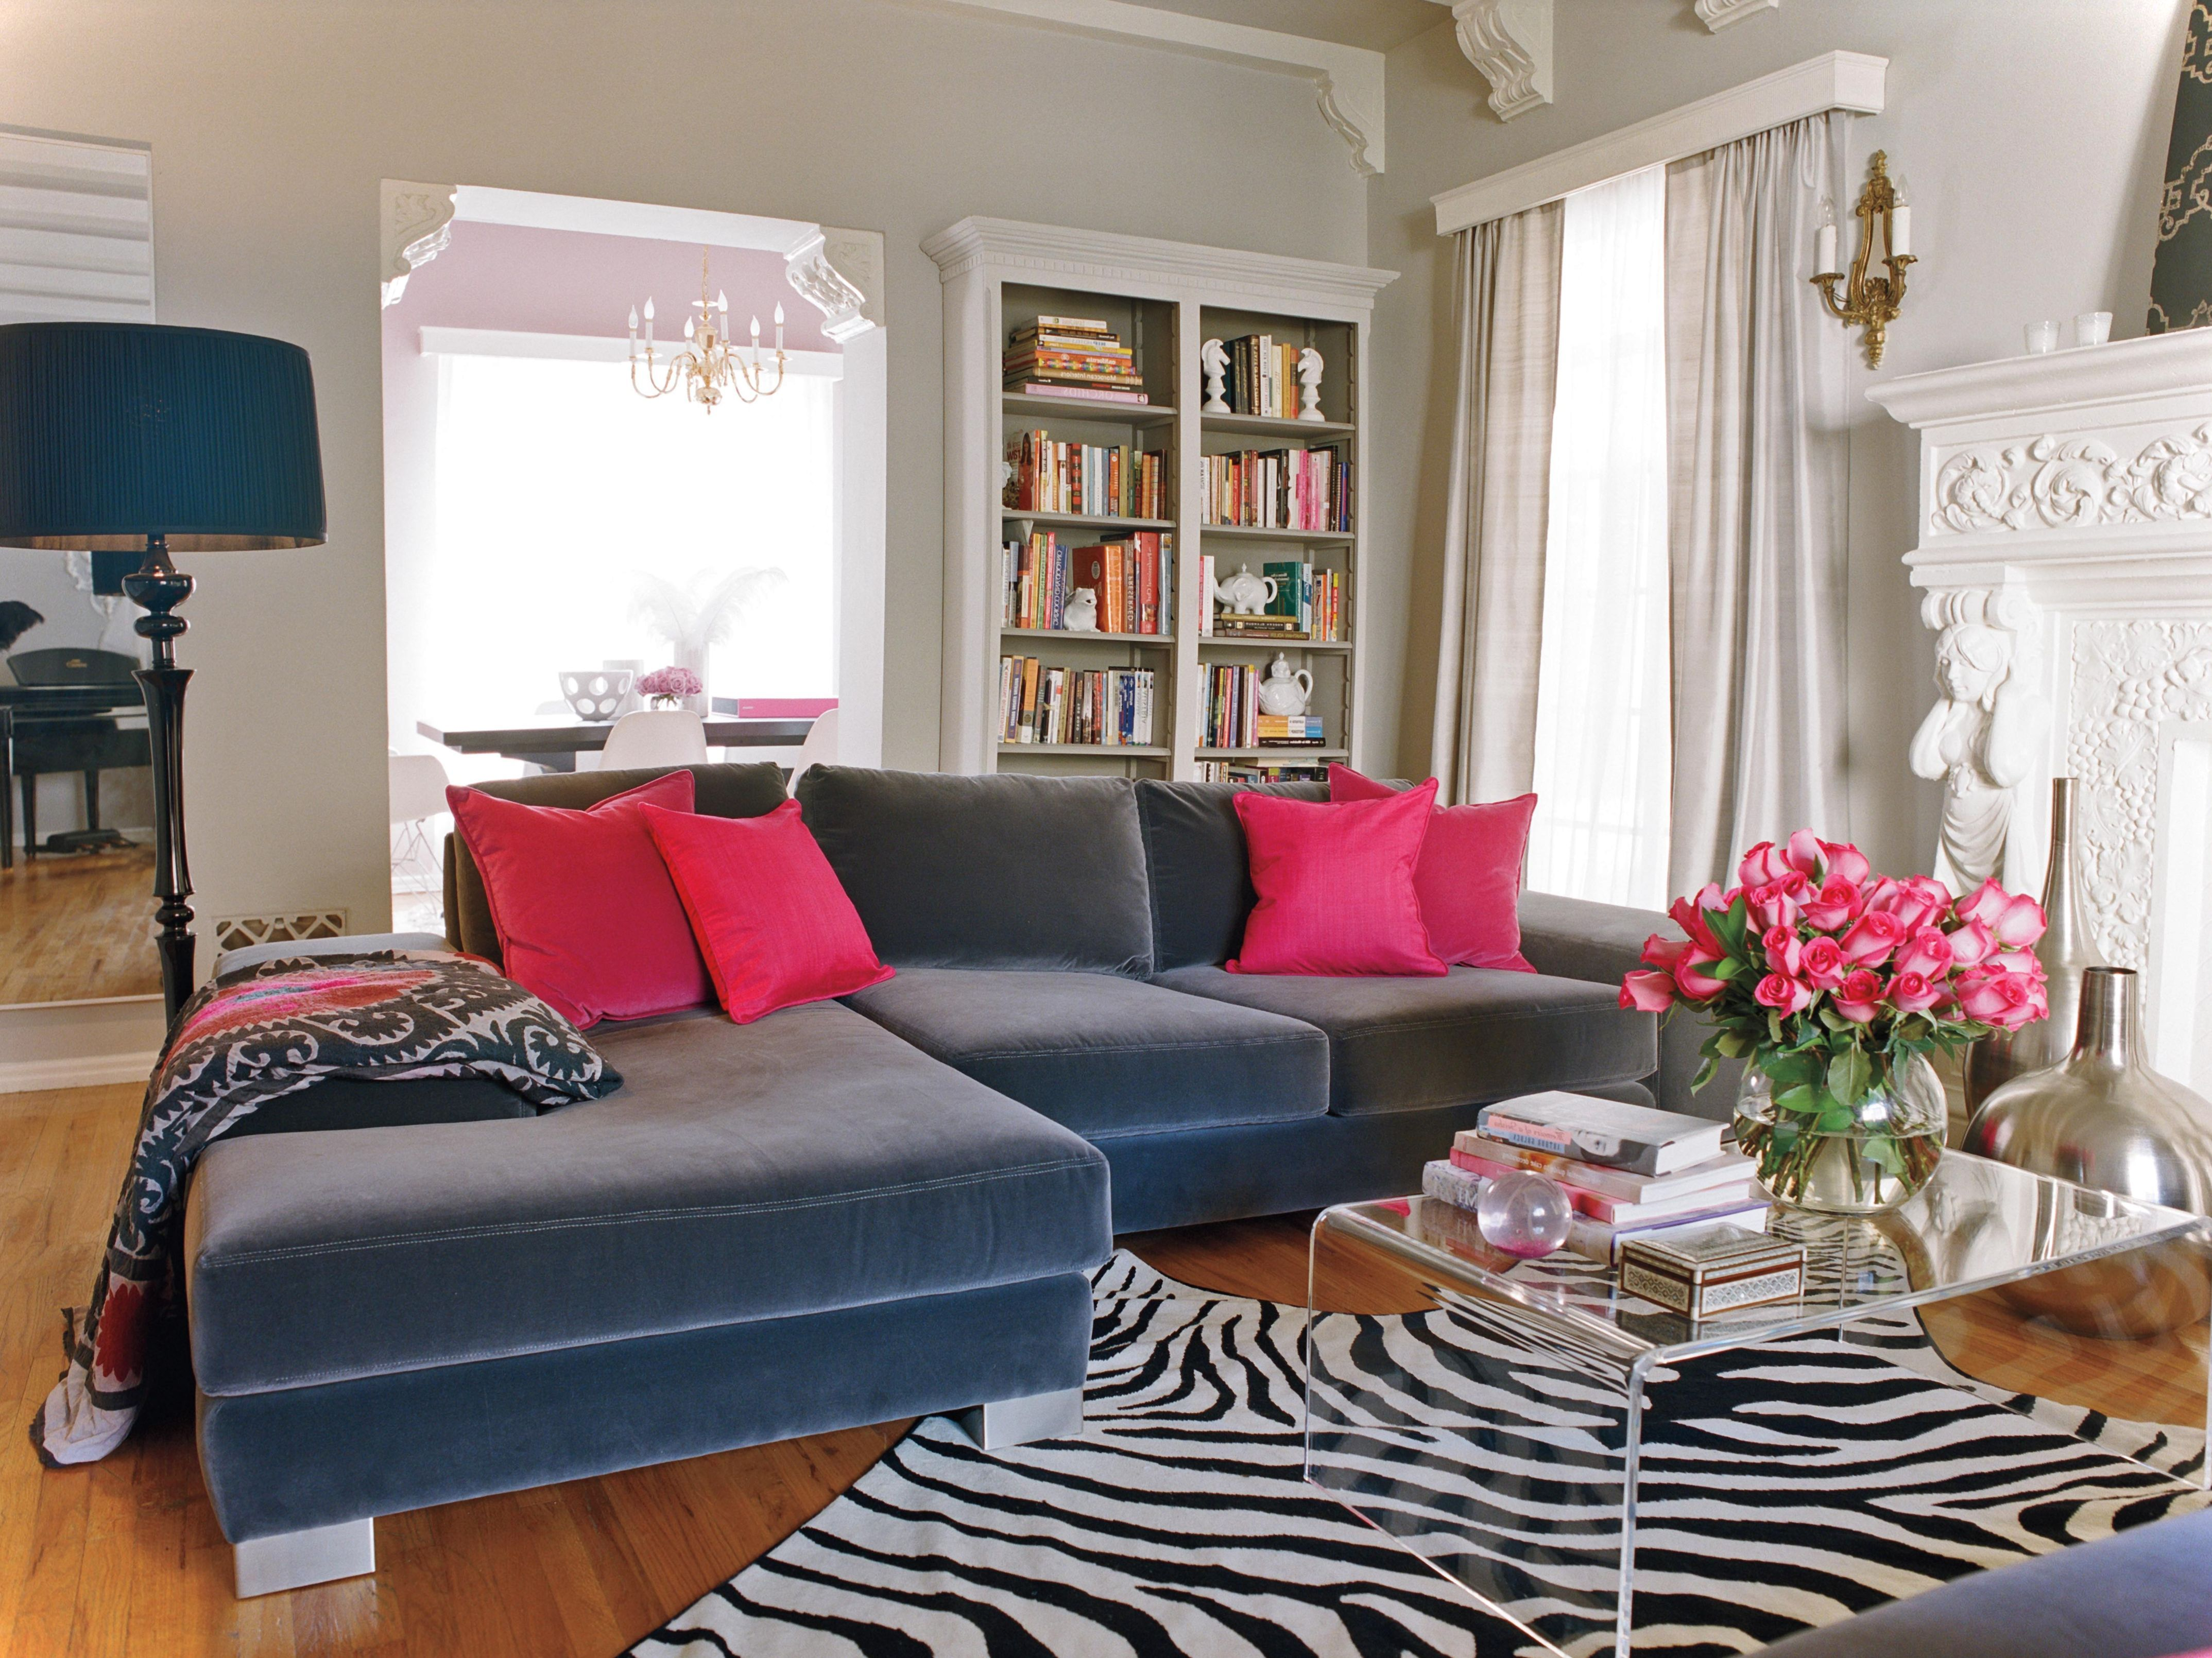 zebra rug and hot pink pillows  romantic living room